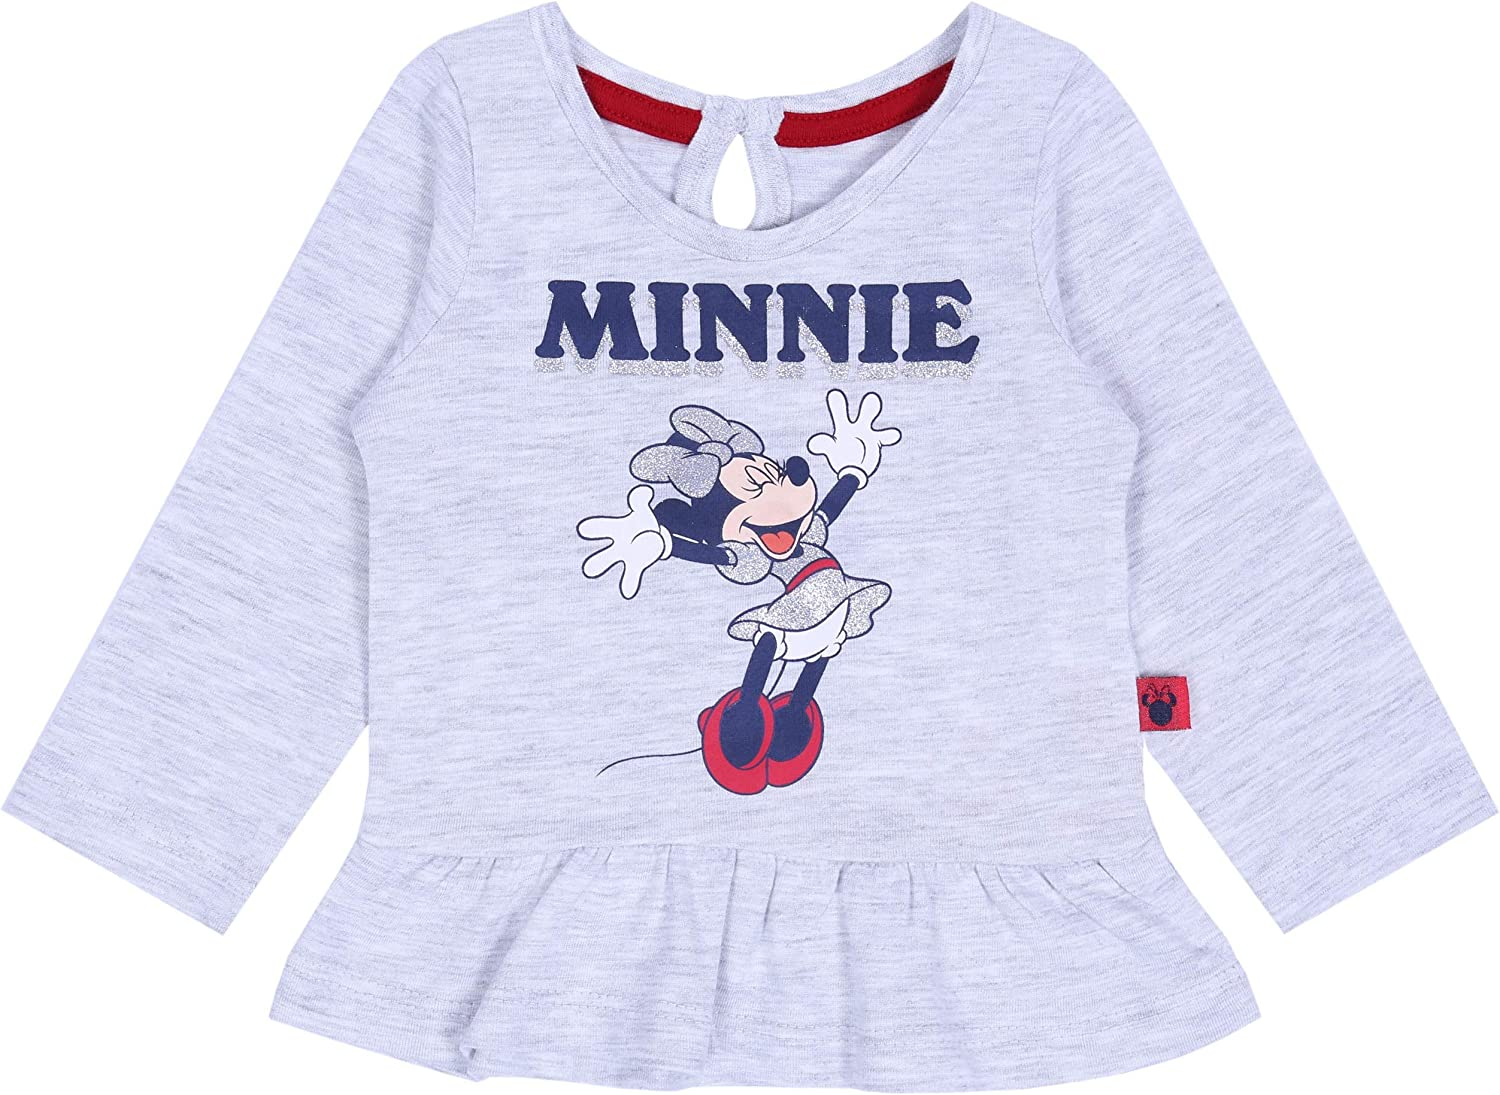 Grey Top /& Red Leggings Set for Baby Girls Minnie Mouse Disney